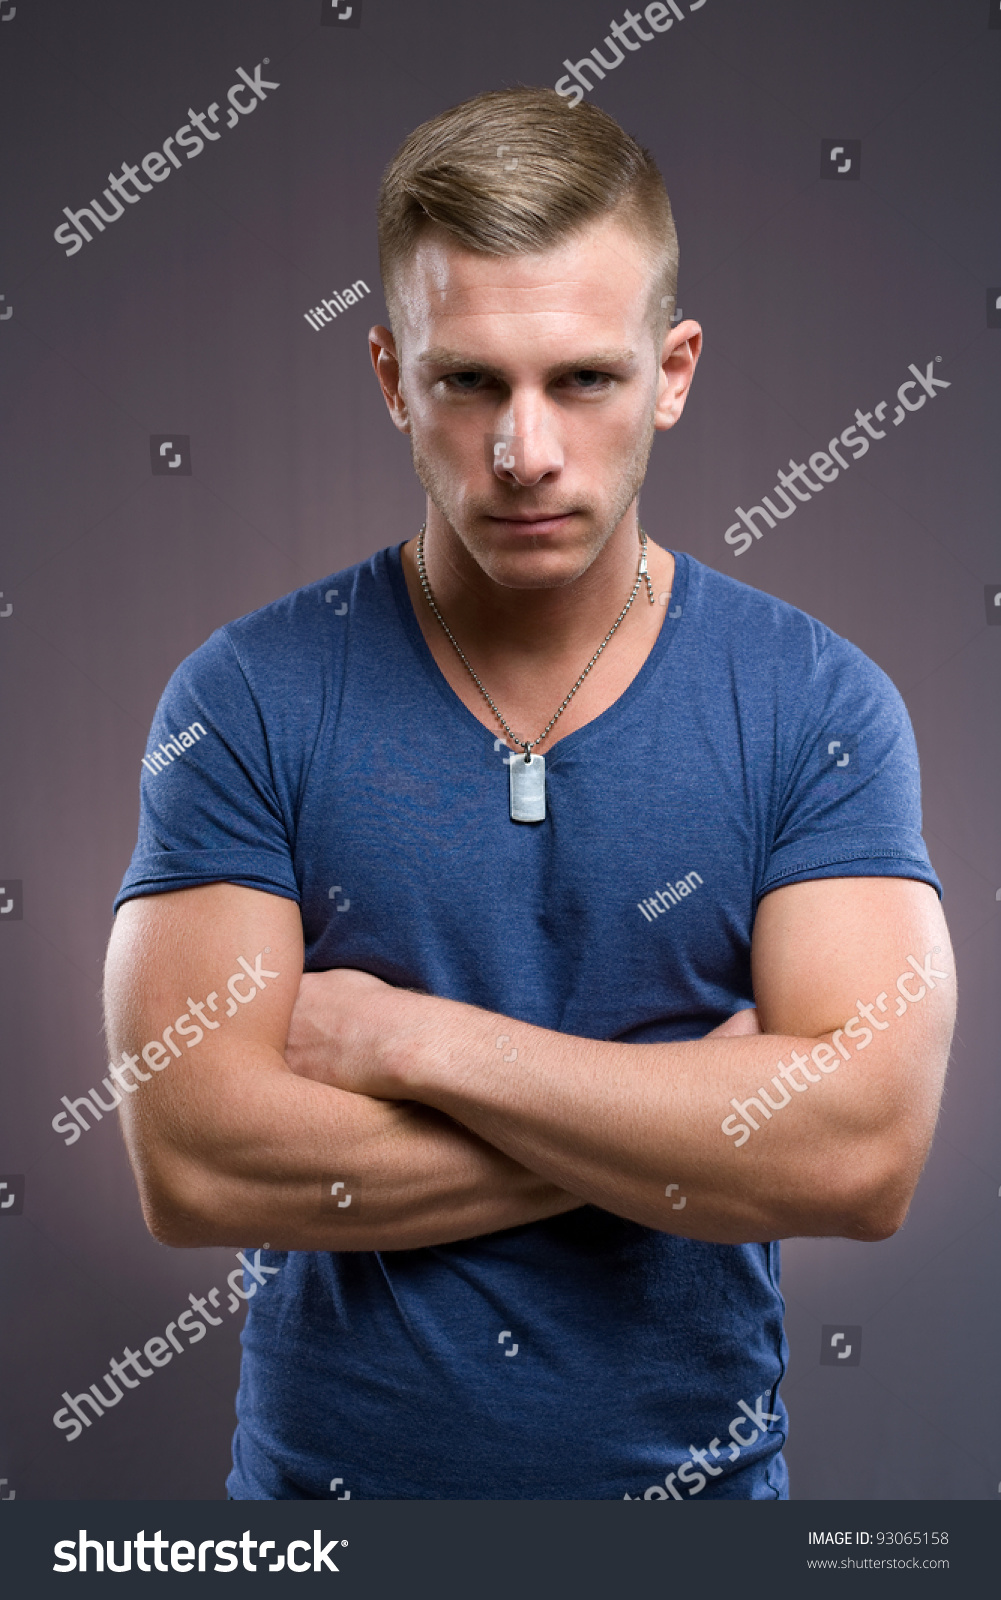 15 Year Boys Bedroom: Portrait Masculine Tough Looking Young Man Stock Photo